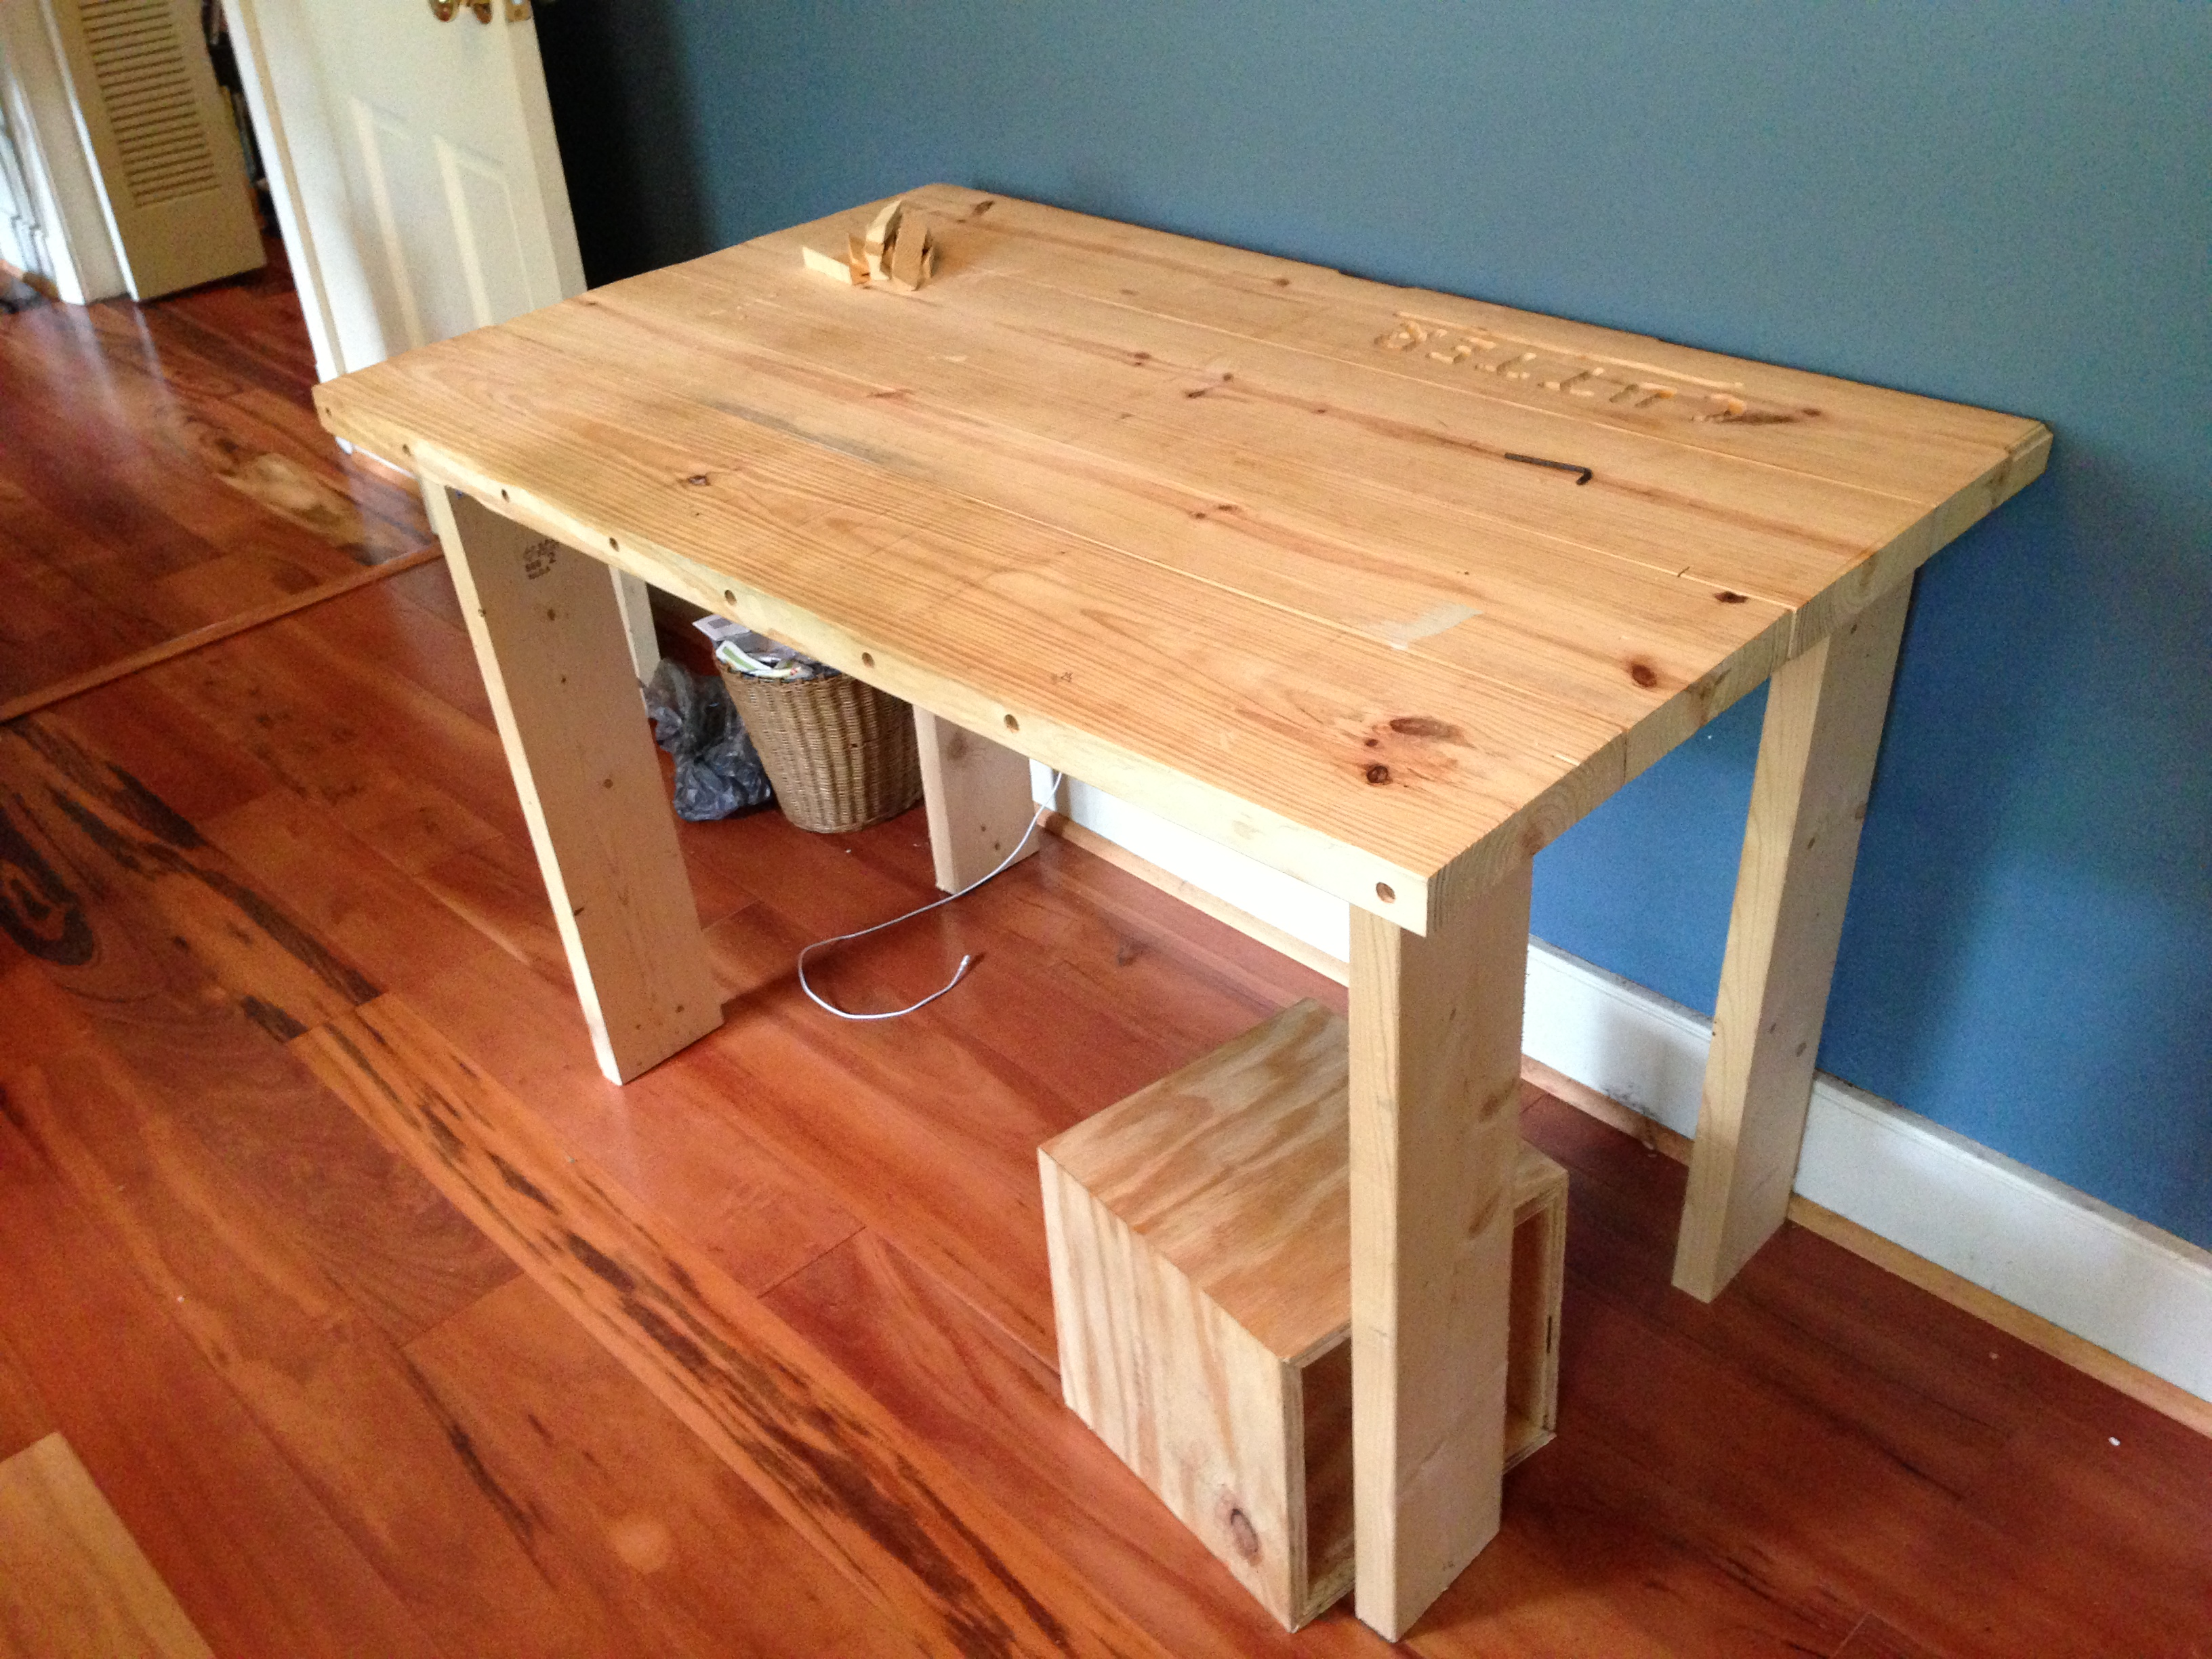 My First Prototype Wooden Desk Learned How To Glue Boards Together And Drill Dowel Holes Without As It Wobbled